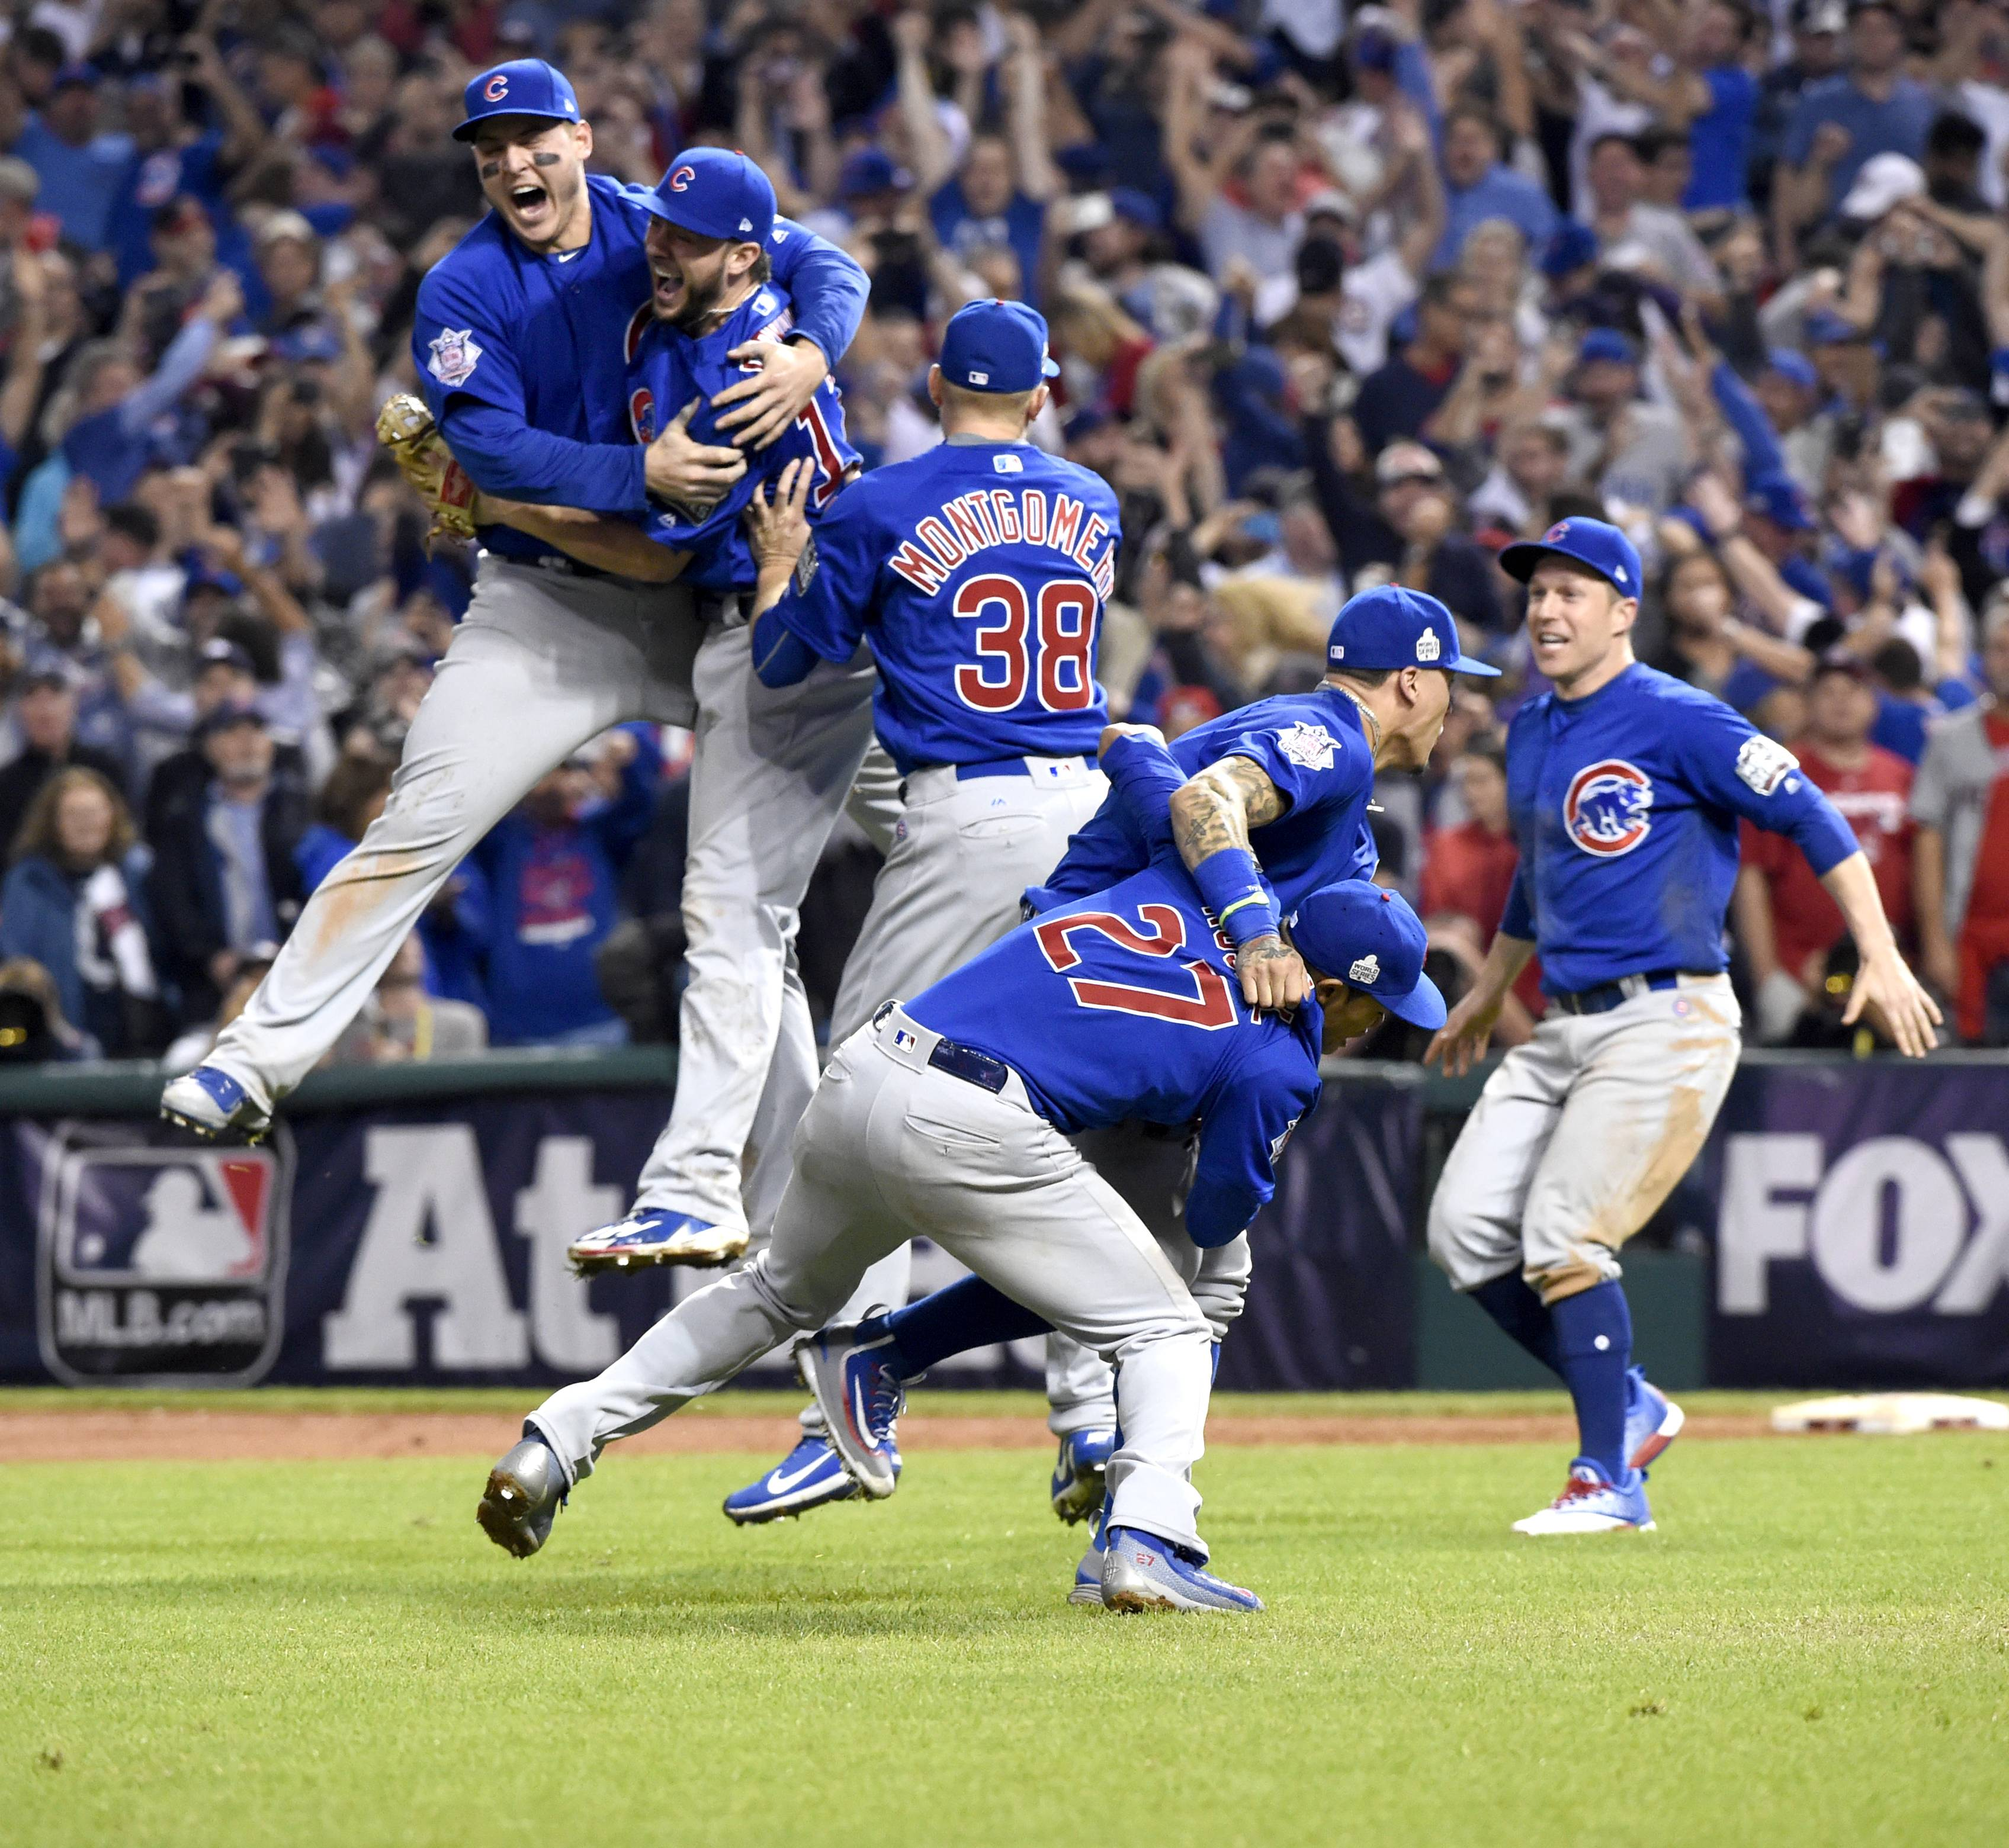 The last time the Cubs played in Cleveland, they had something to celebrate after winning Game 7 of the 2016 World Series in 10 innings at Progressive Field.